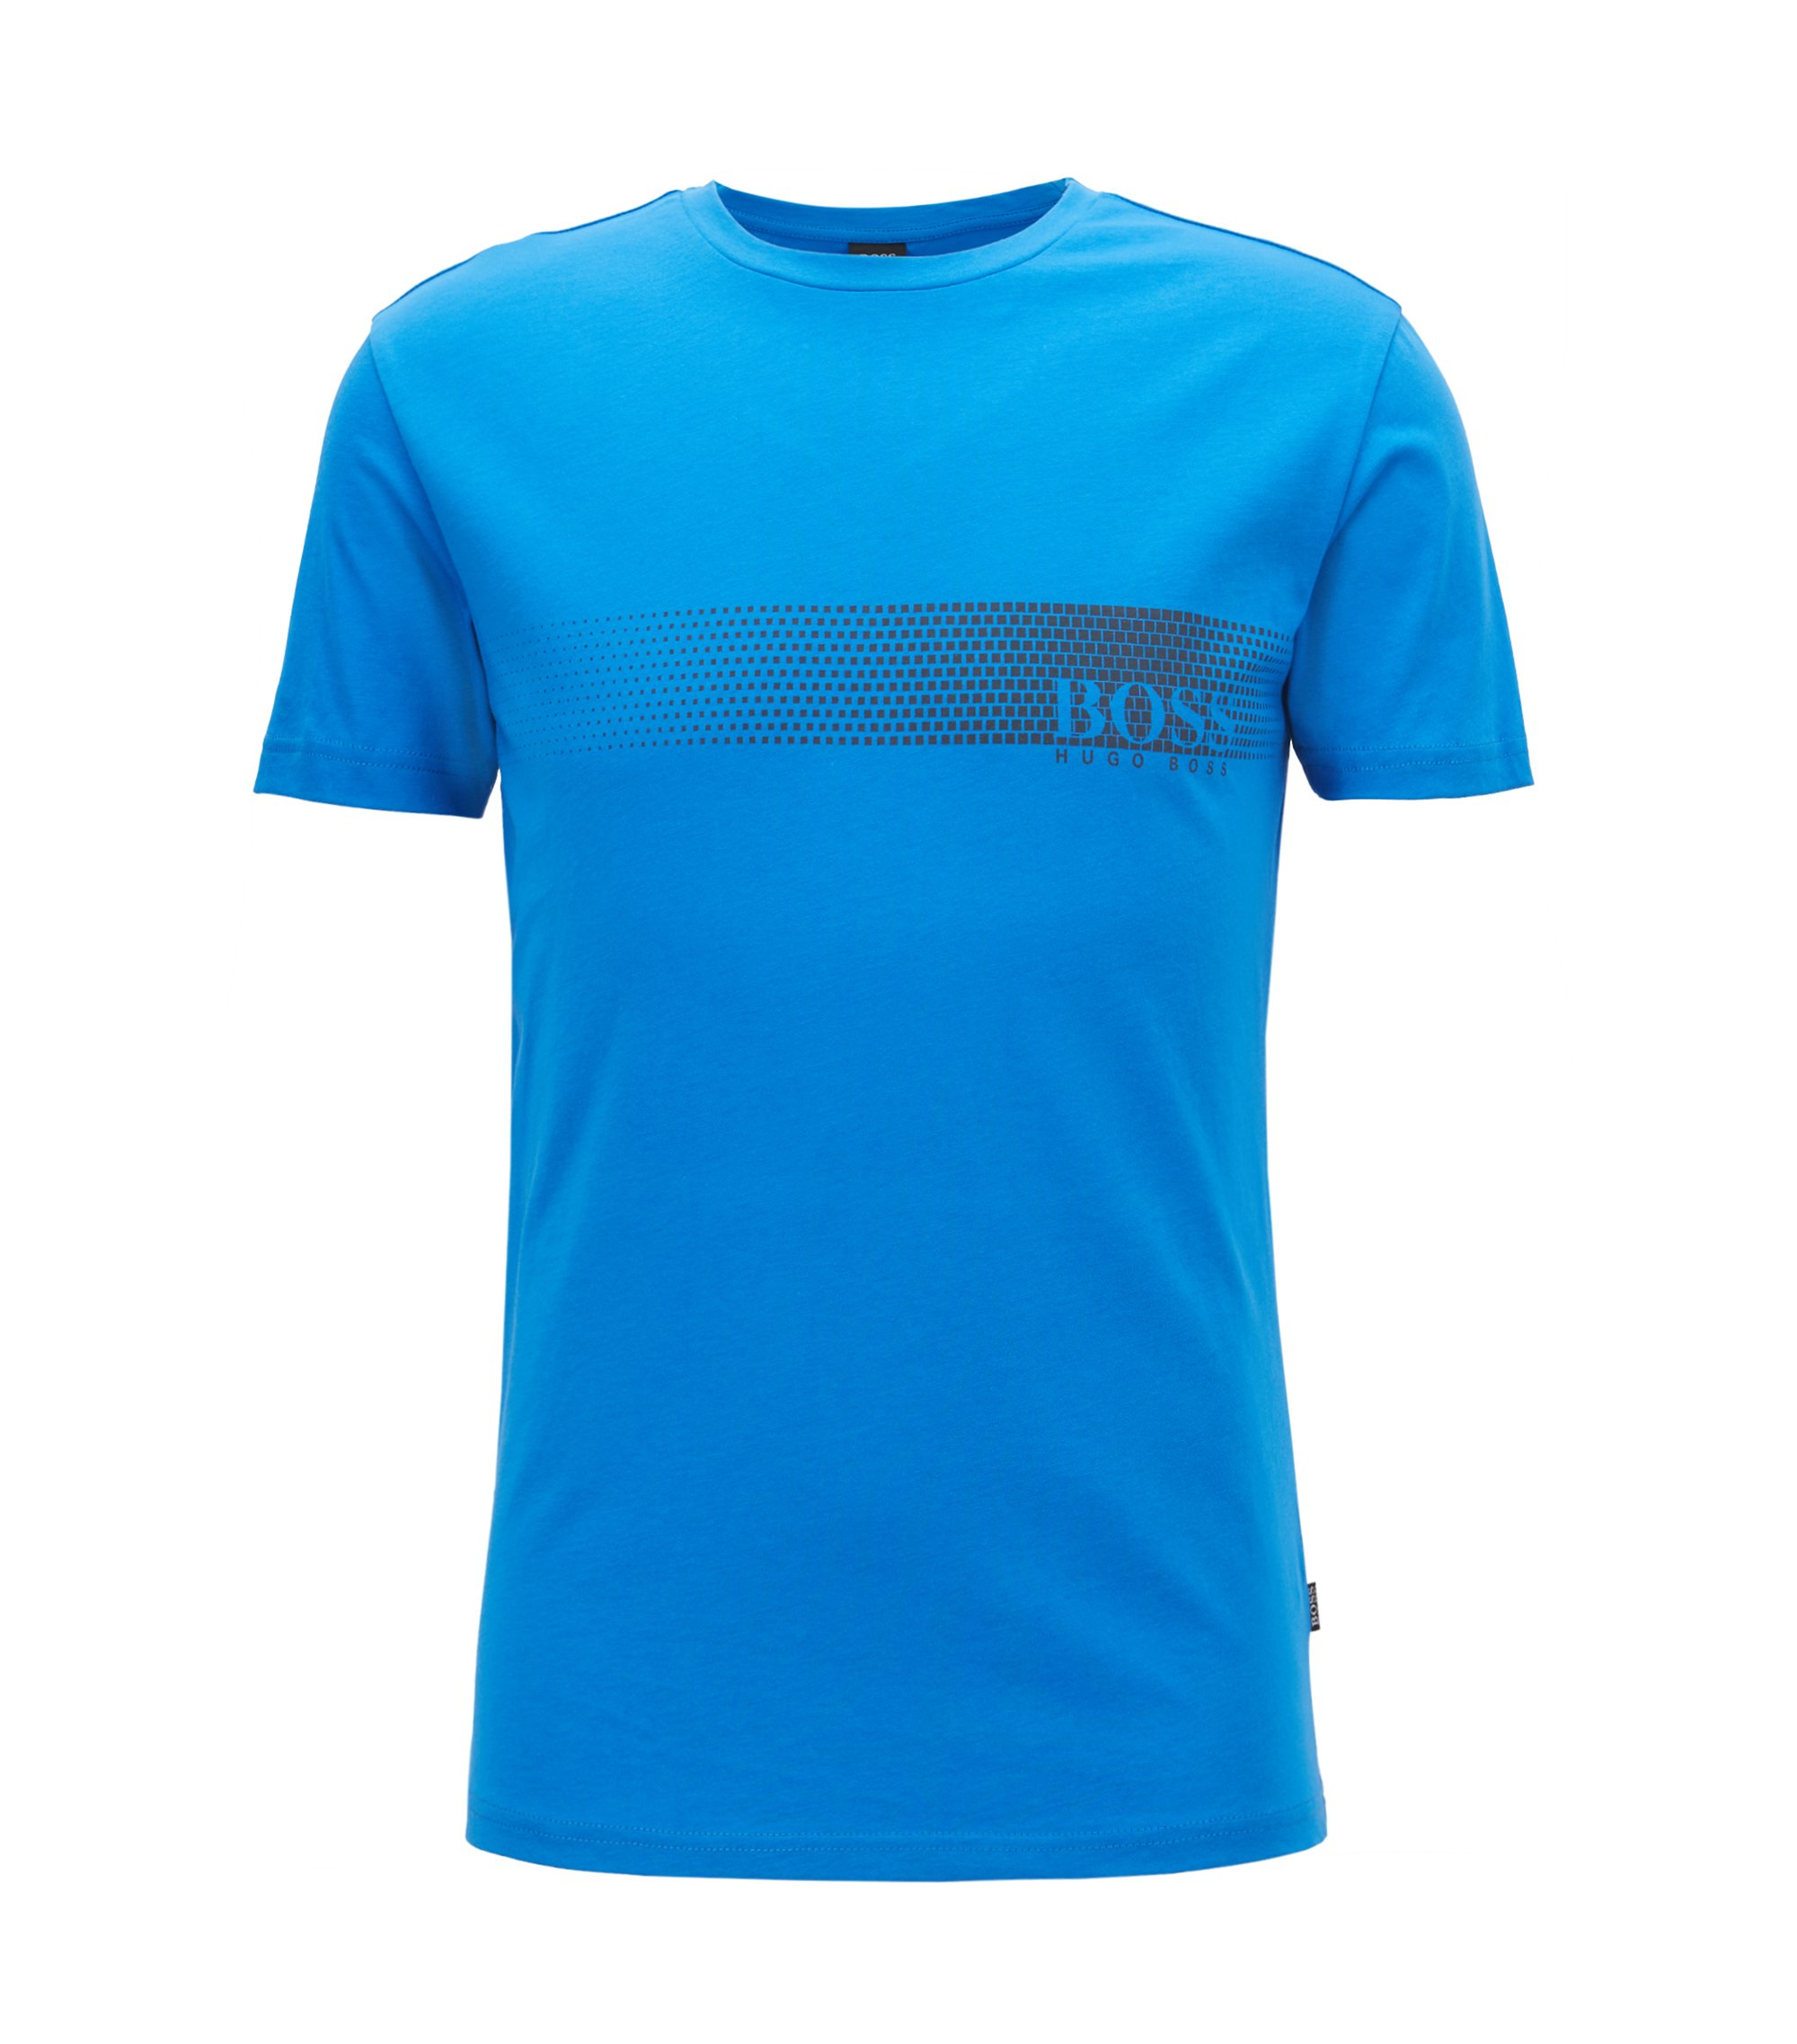 T-shirt anti-UV in cotone con logo, Blu